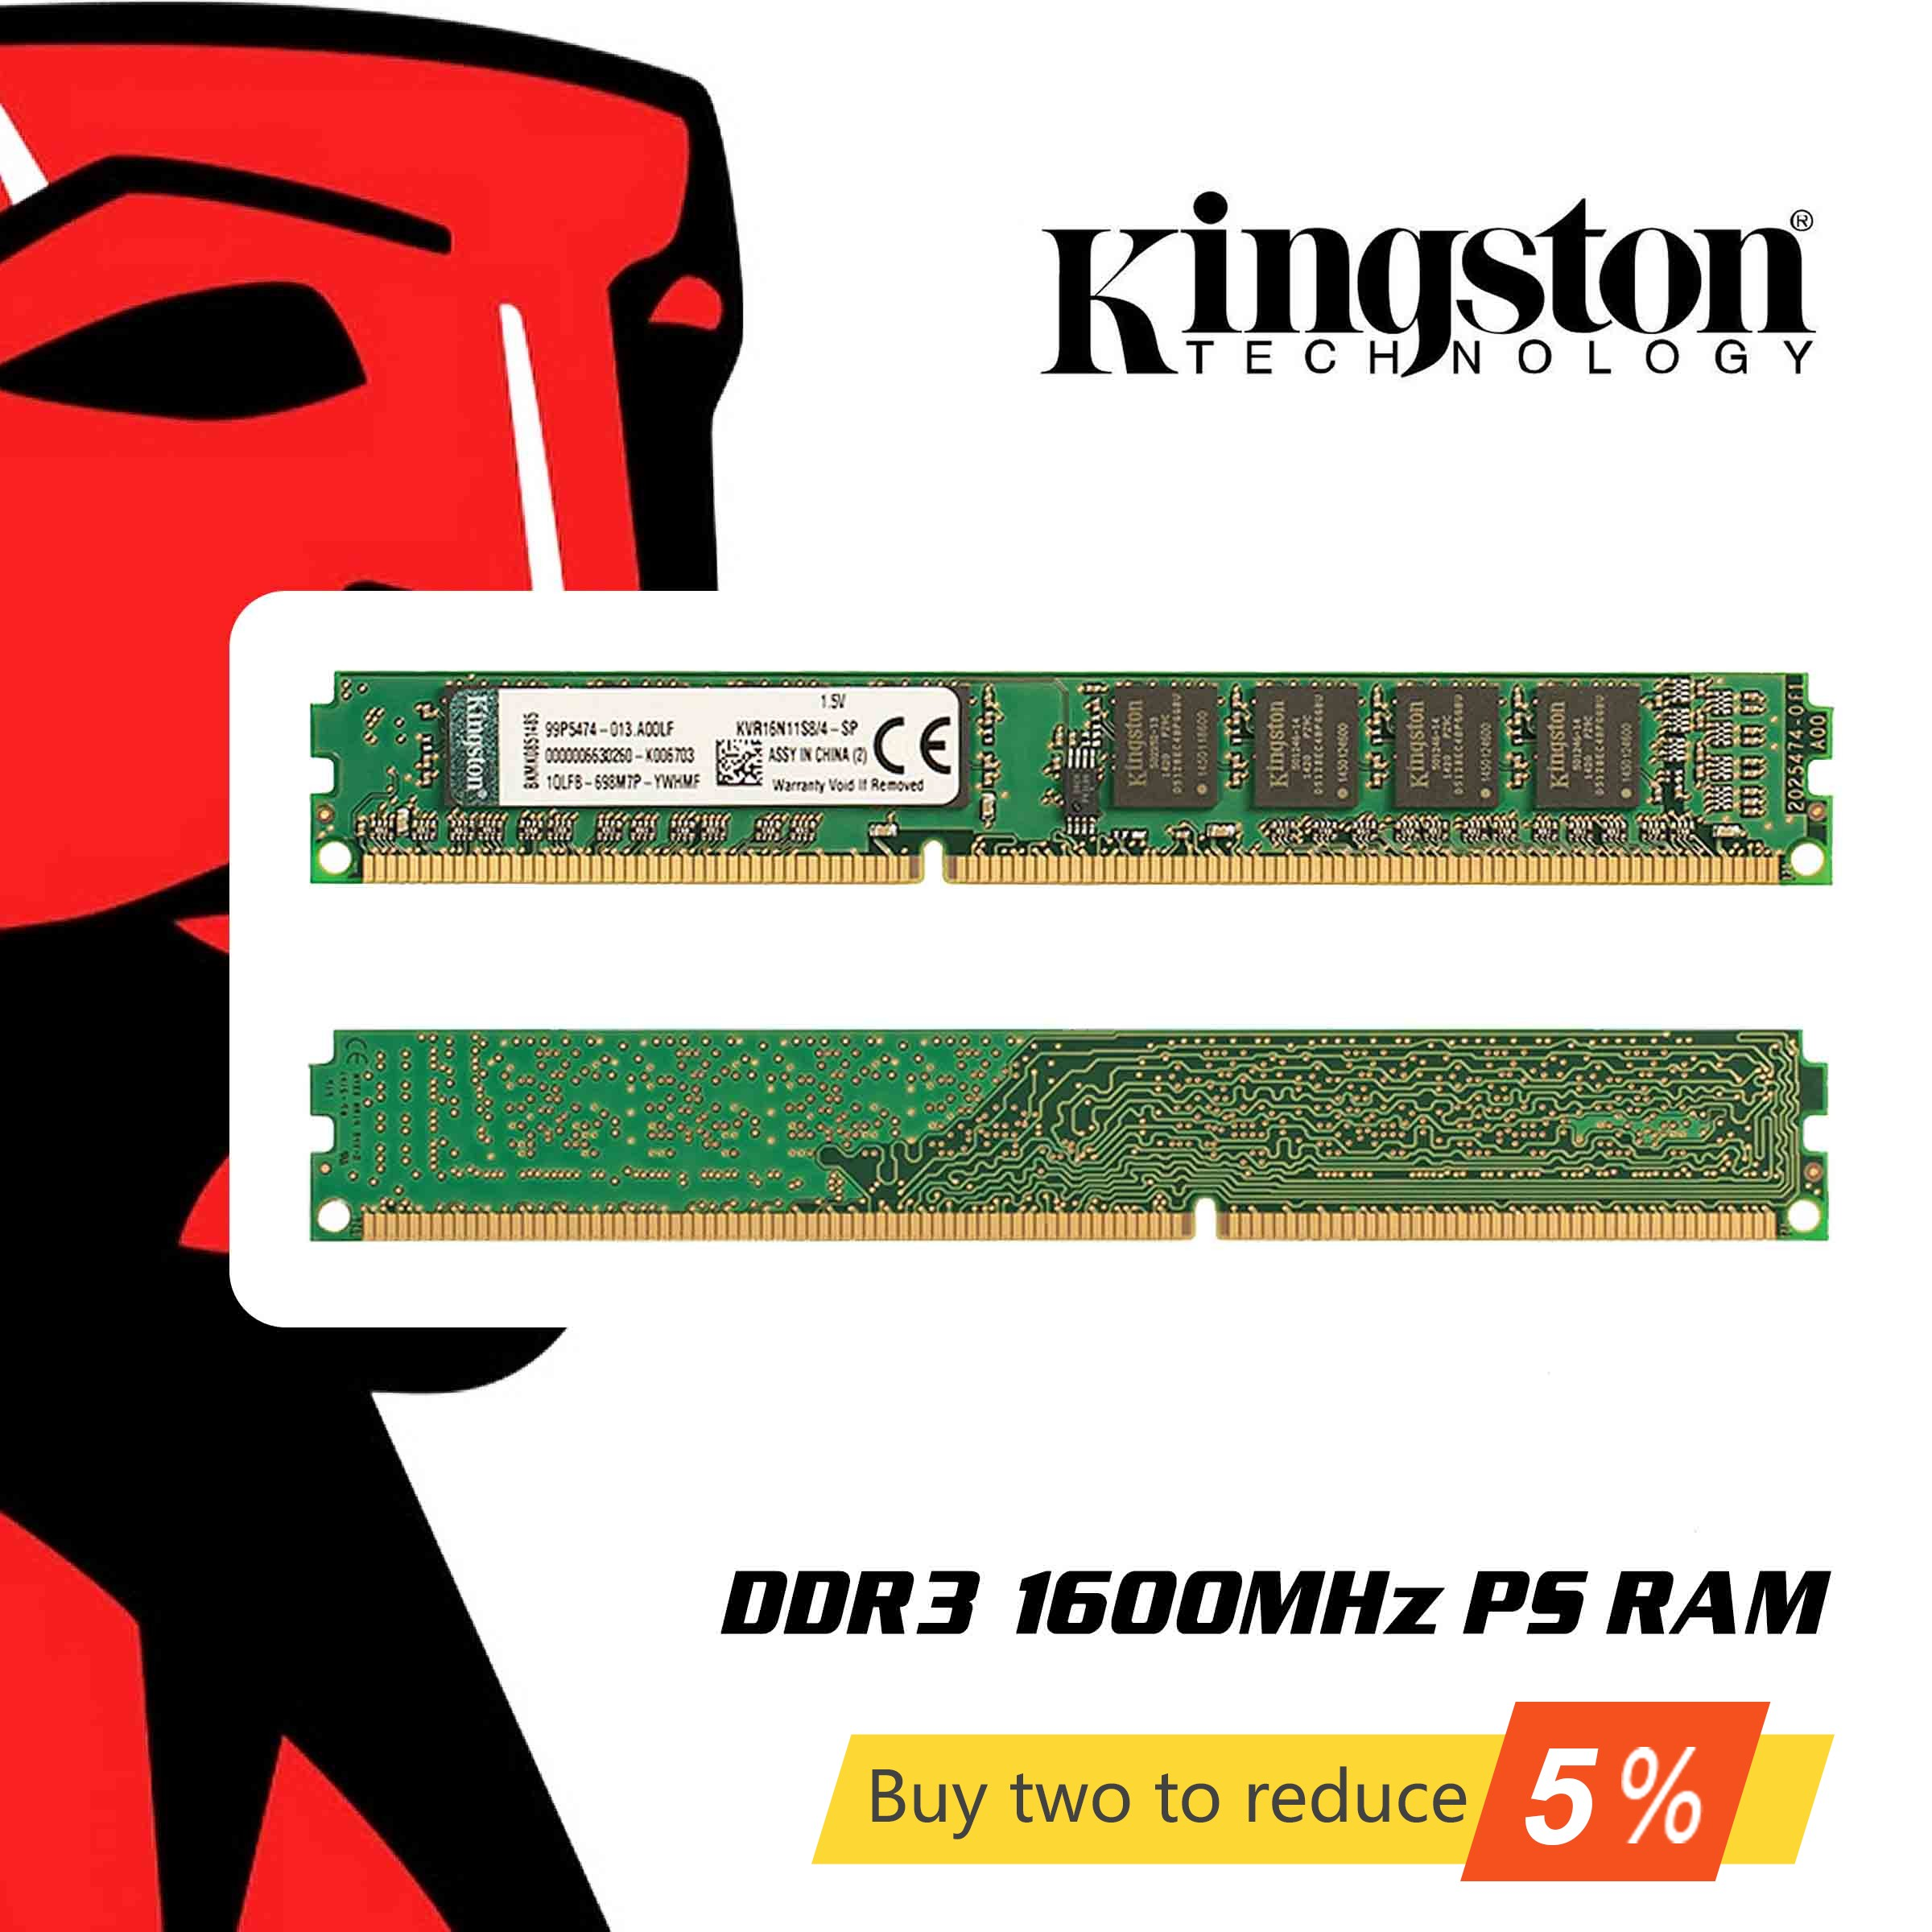 Original Kingston RAM Memory <font><b>DDR3</b></font> 1600MHZ <font><b>4GB</b></font> 8GB <font><b>Memoria</b></font> RAMs <font><b>1600</b></font> MHz 8 Gigabytes Gigs Stick for Desktop Laptop PC Notebook image